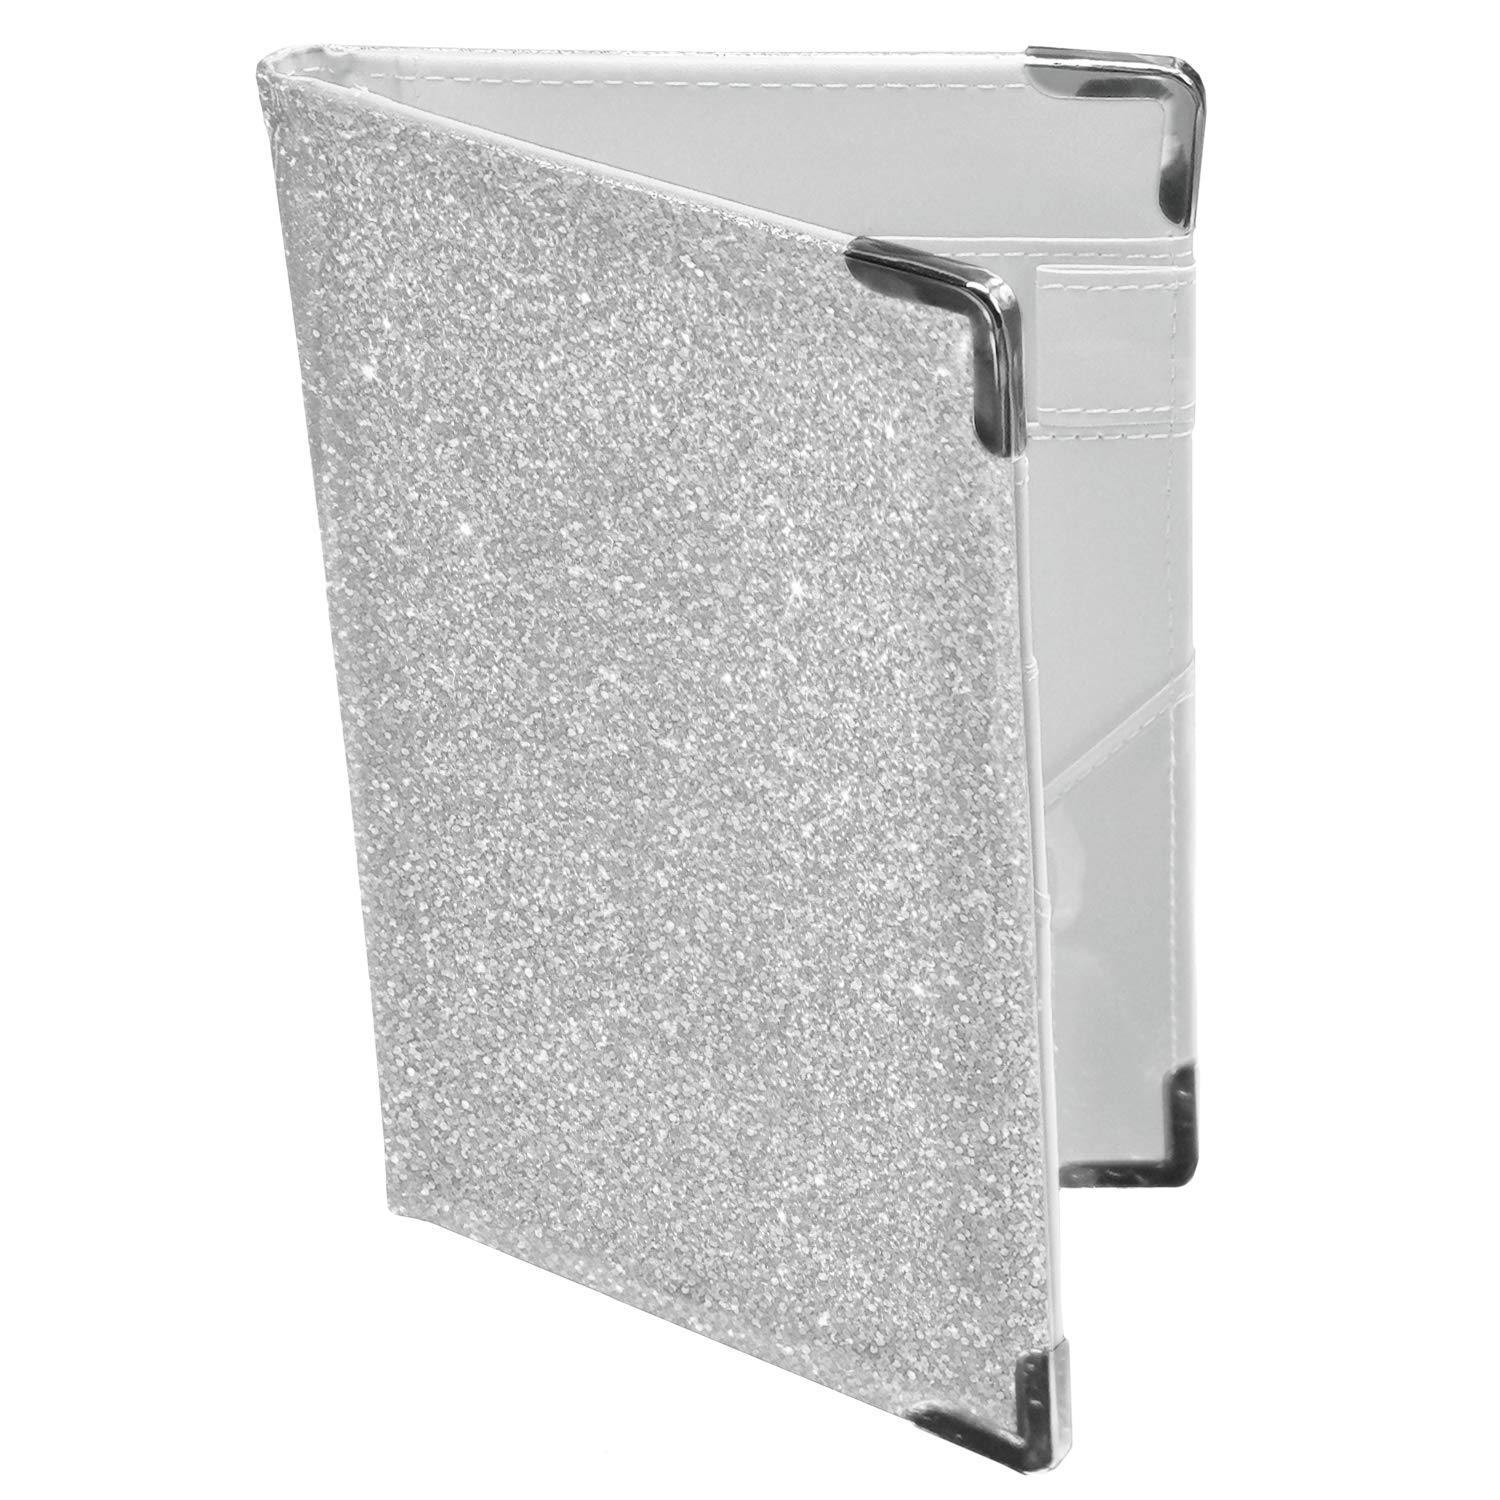 Holographic Glitter Silver Server Book Organizer for Waitress | 10 Pockets, 4 Metal Protective Corners, Zipper Pouch and Pen Holder | Waiter Waitress Wallet for Restaurant waitstaff | Silver